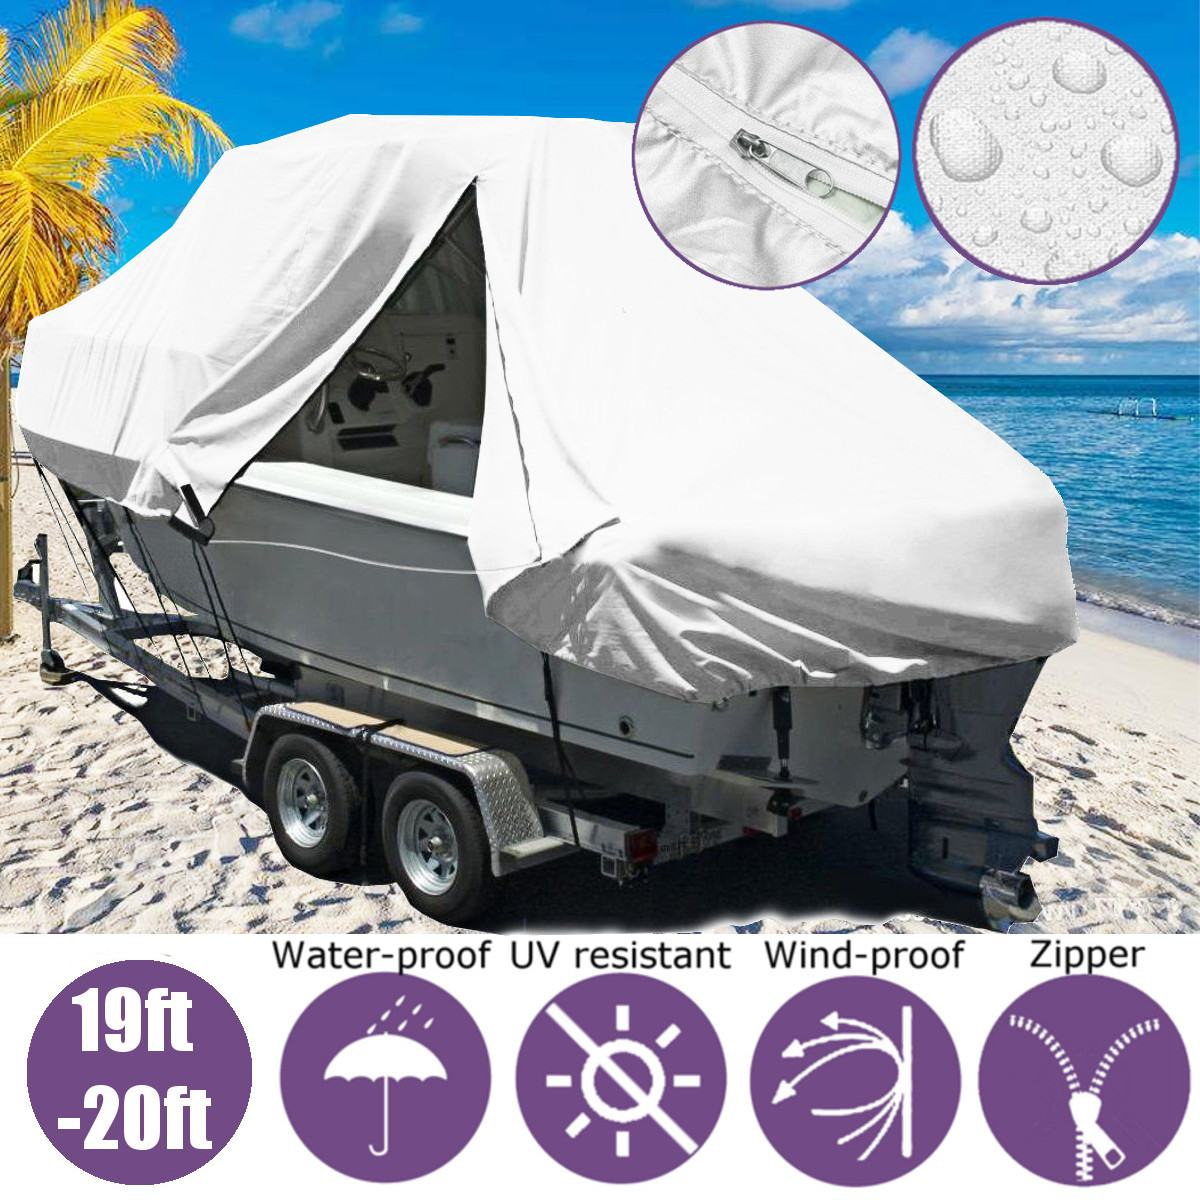 19-20ft 5.8-6.1m Boat Cover Marine Boat Yacht New Design Premium Heavy Duty 600D Trailerable Jumbo Boat Cover